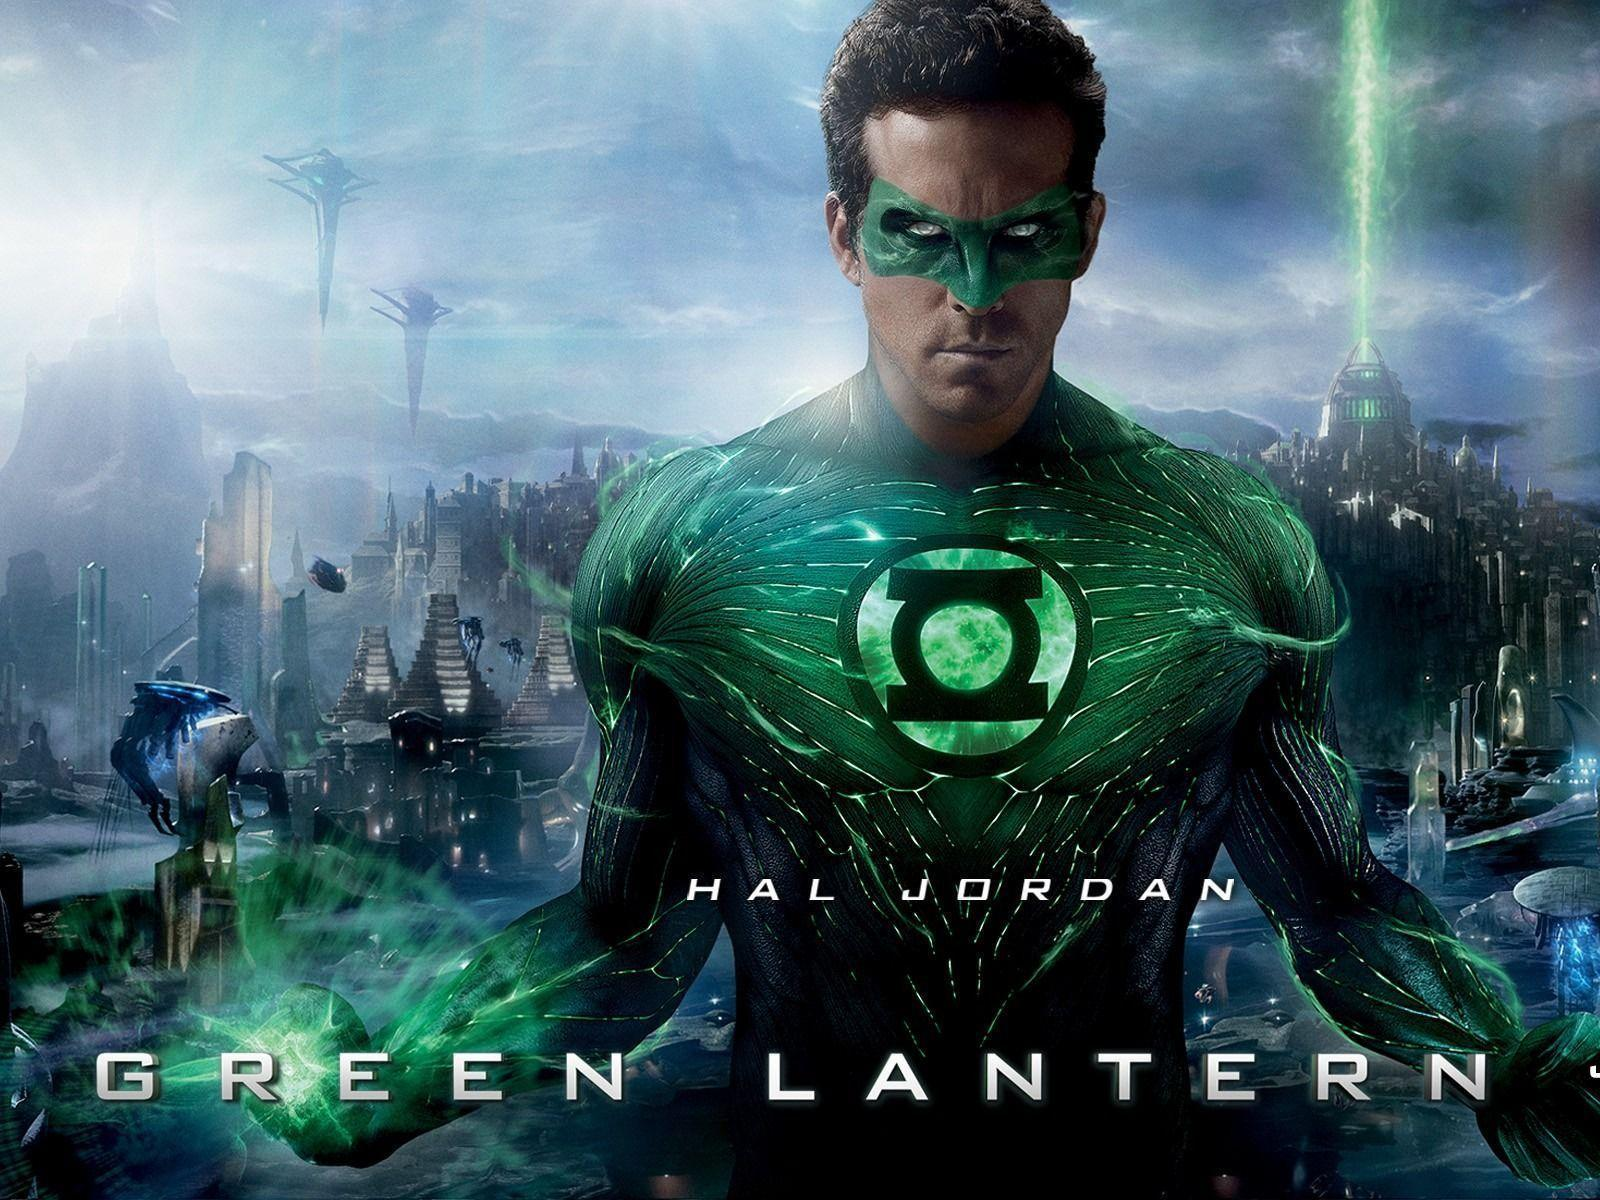 Green Lantern movie poster wallpapers 03